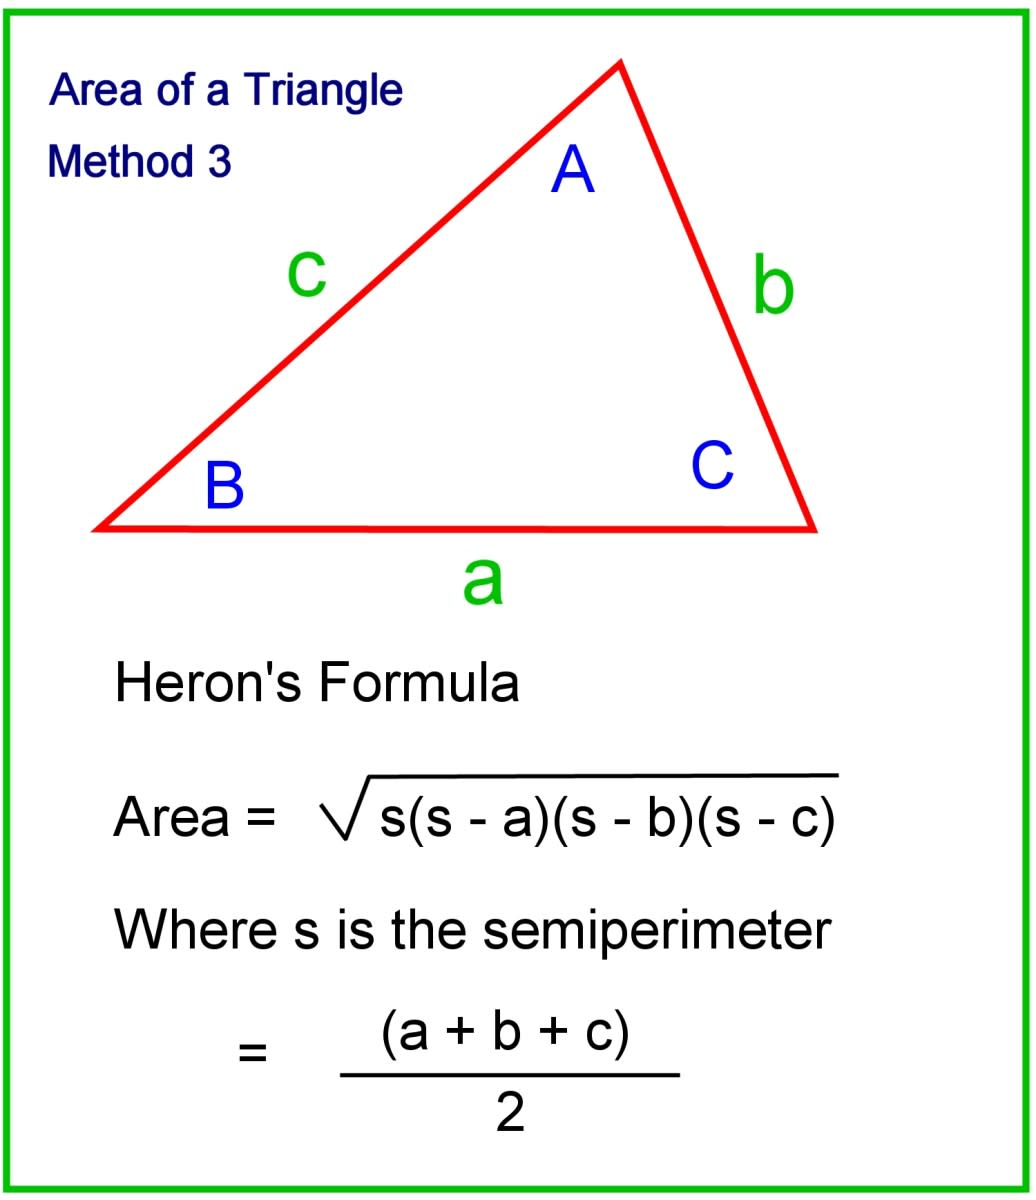 Using Heron's formua to work out the area of a triangle.